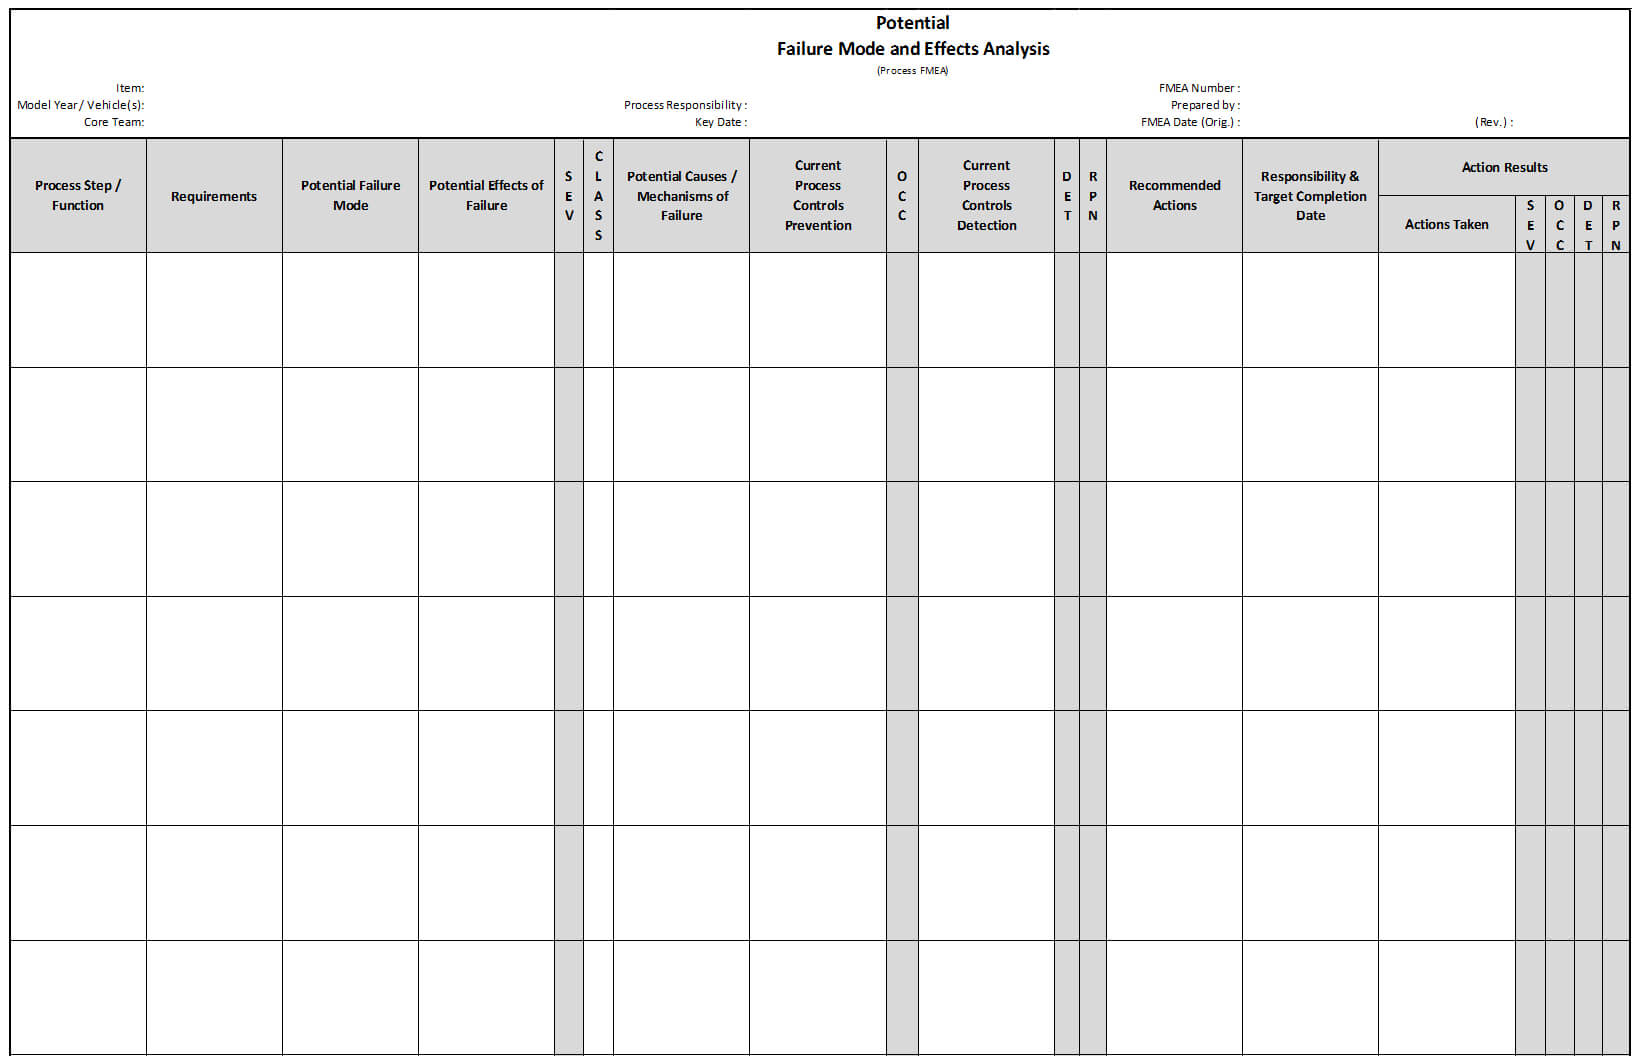 Fmea | Failure Mode And Effects Analysis | Quality One Pertaining To Failure Investigation Report Template